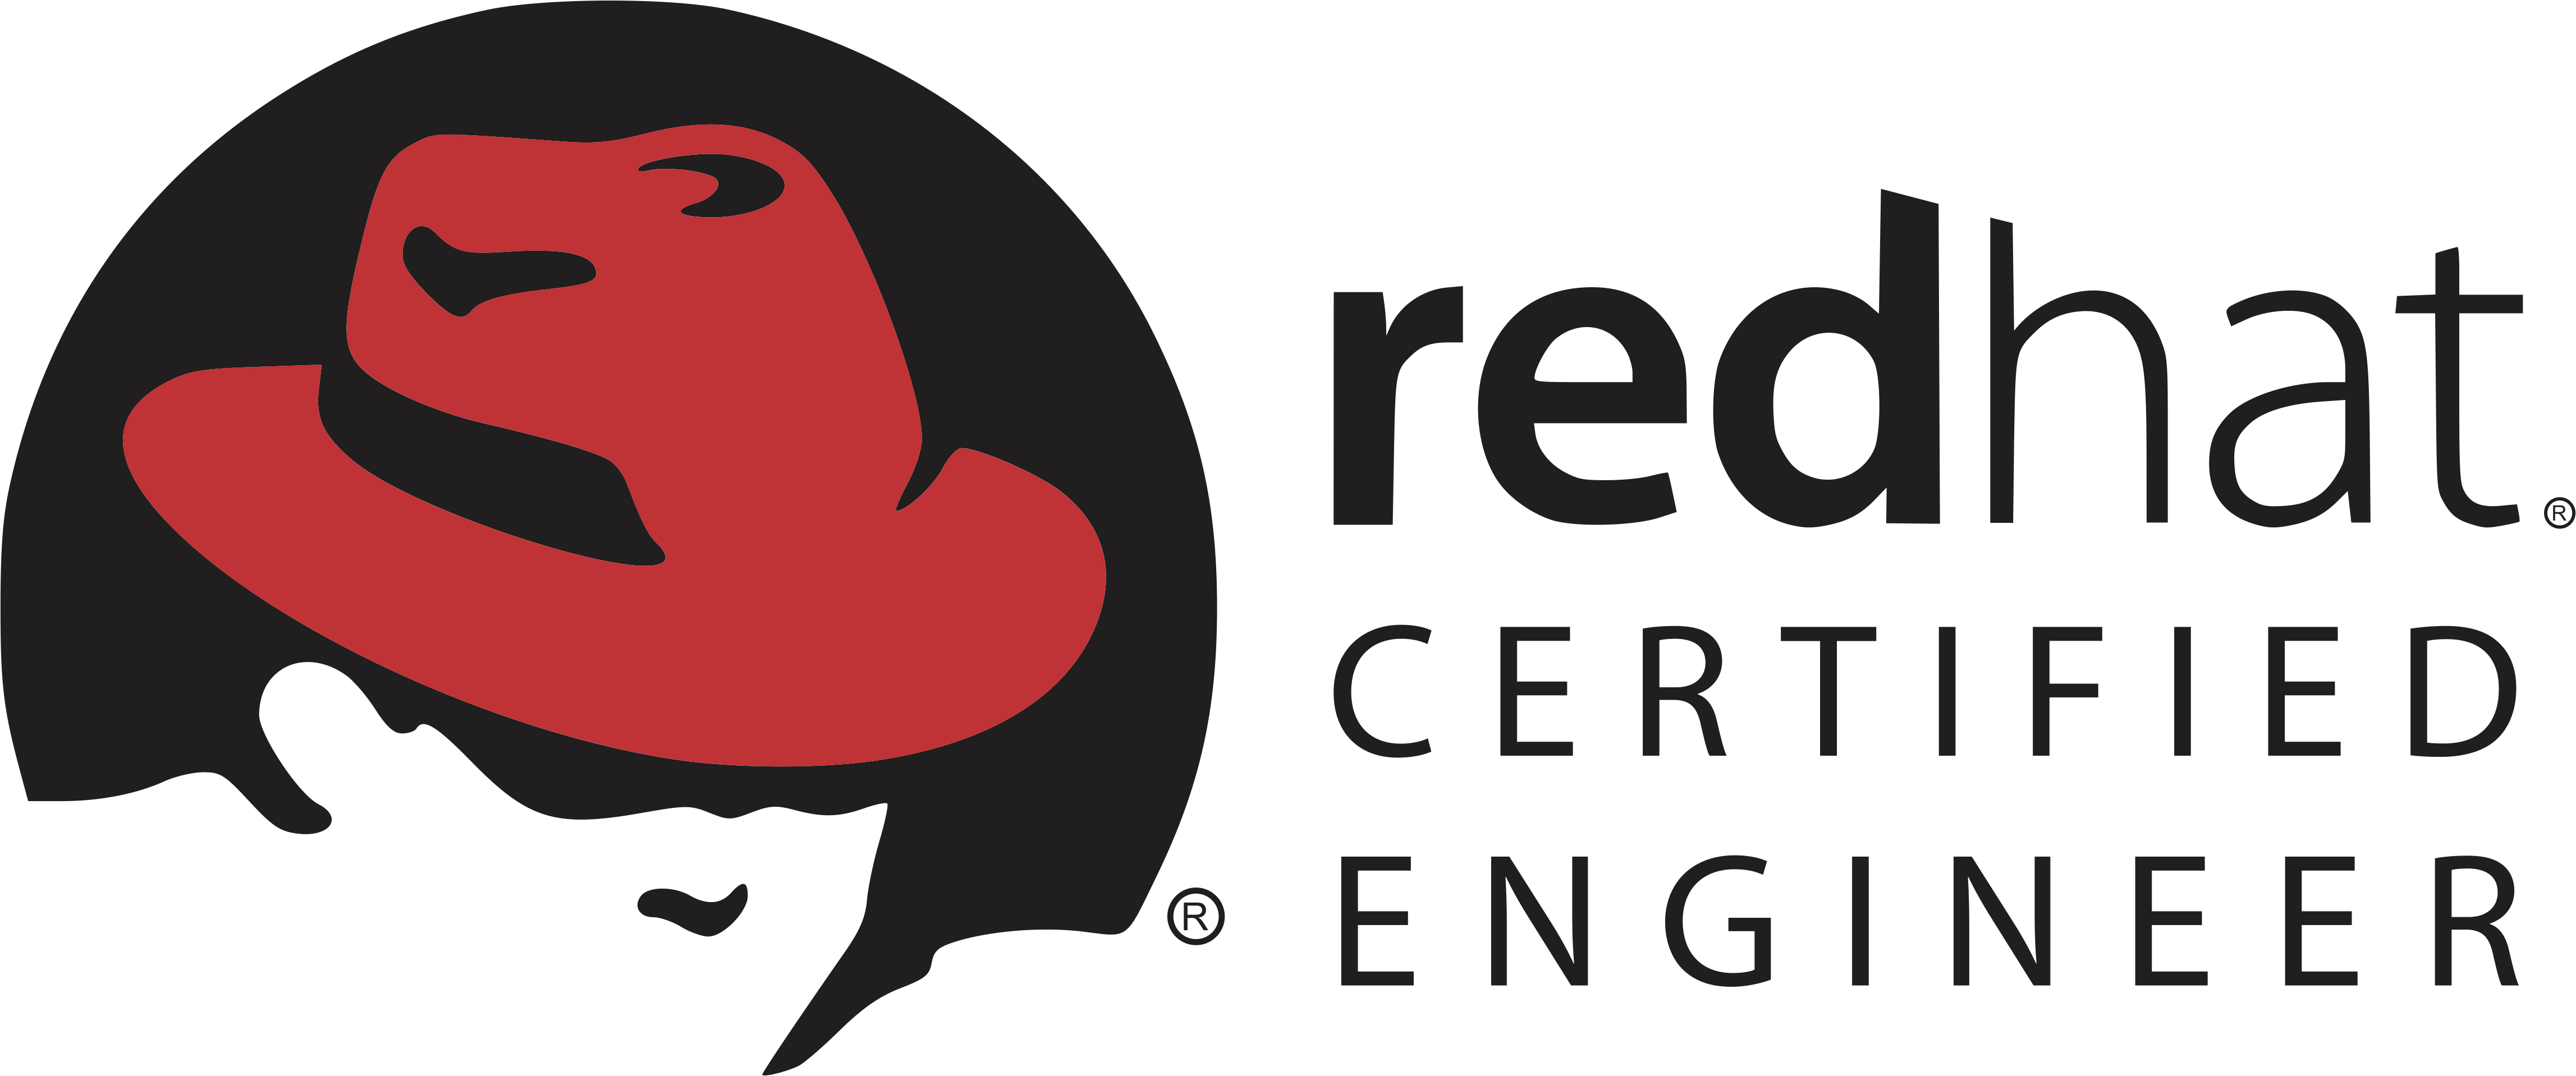 red_hat_certified_engineer.png